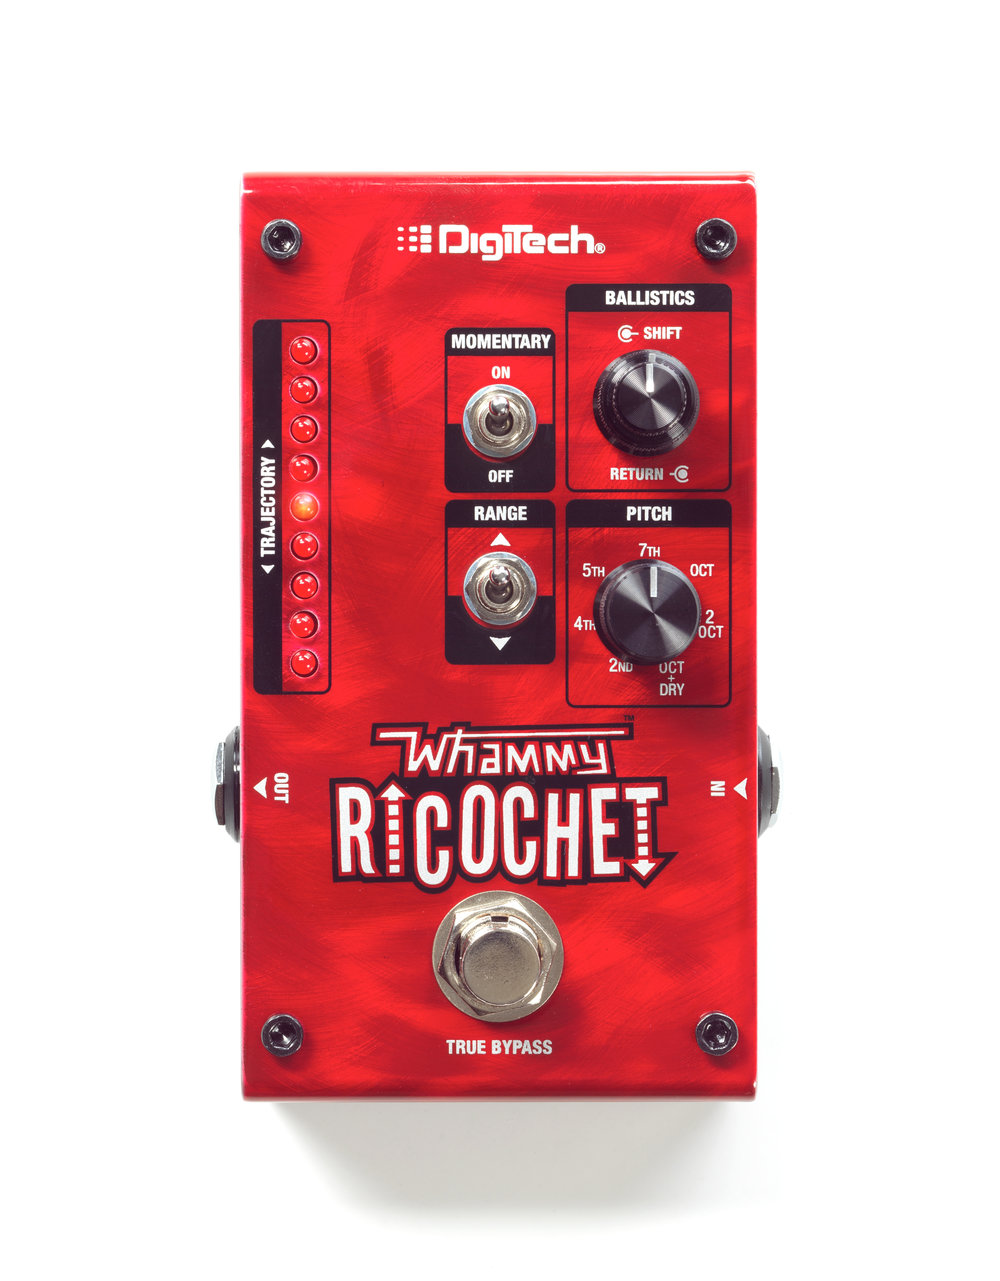 Photo credit: Digitech